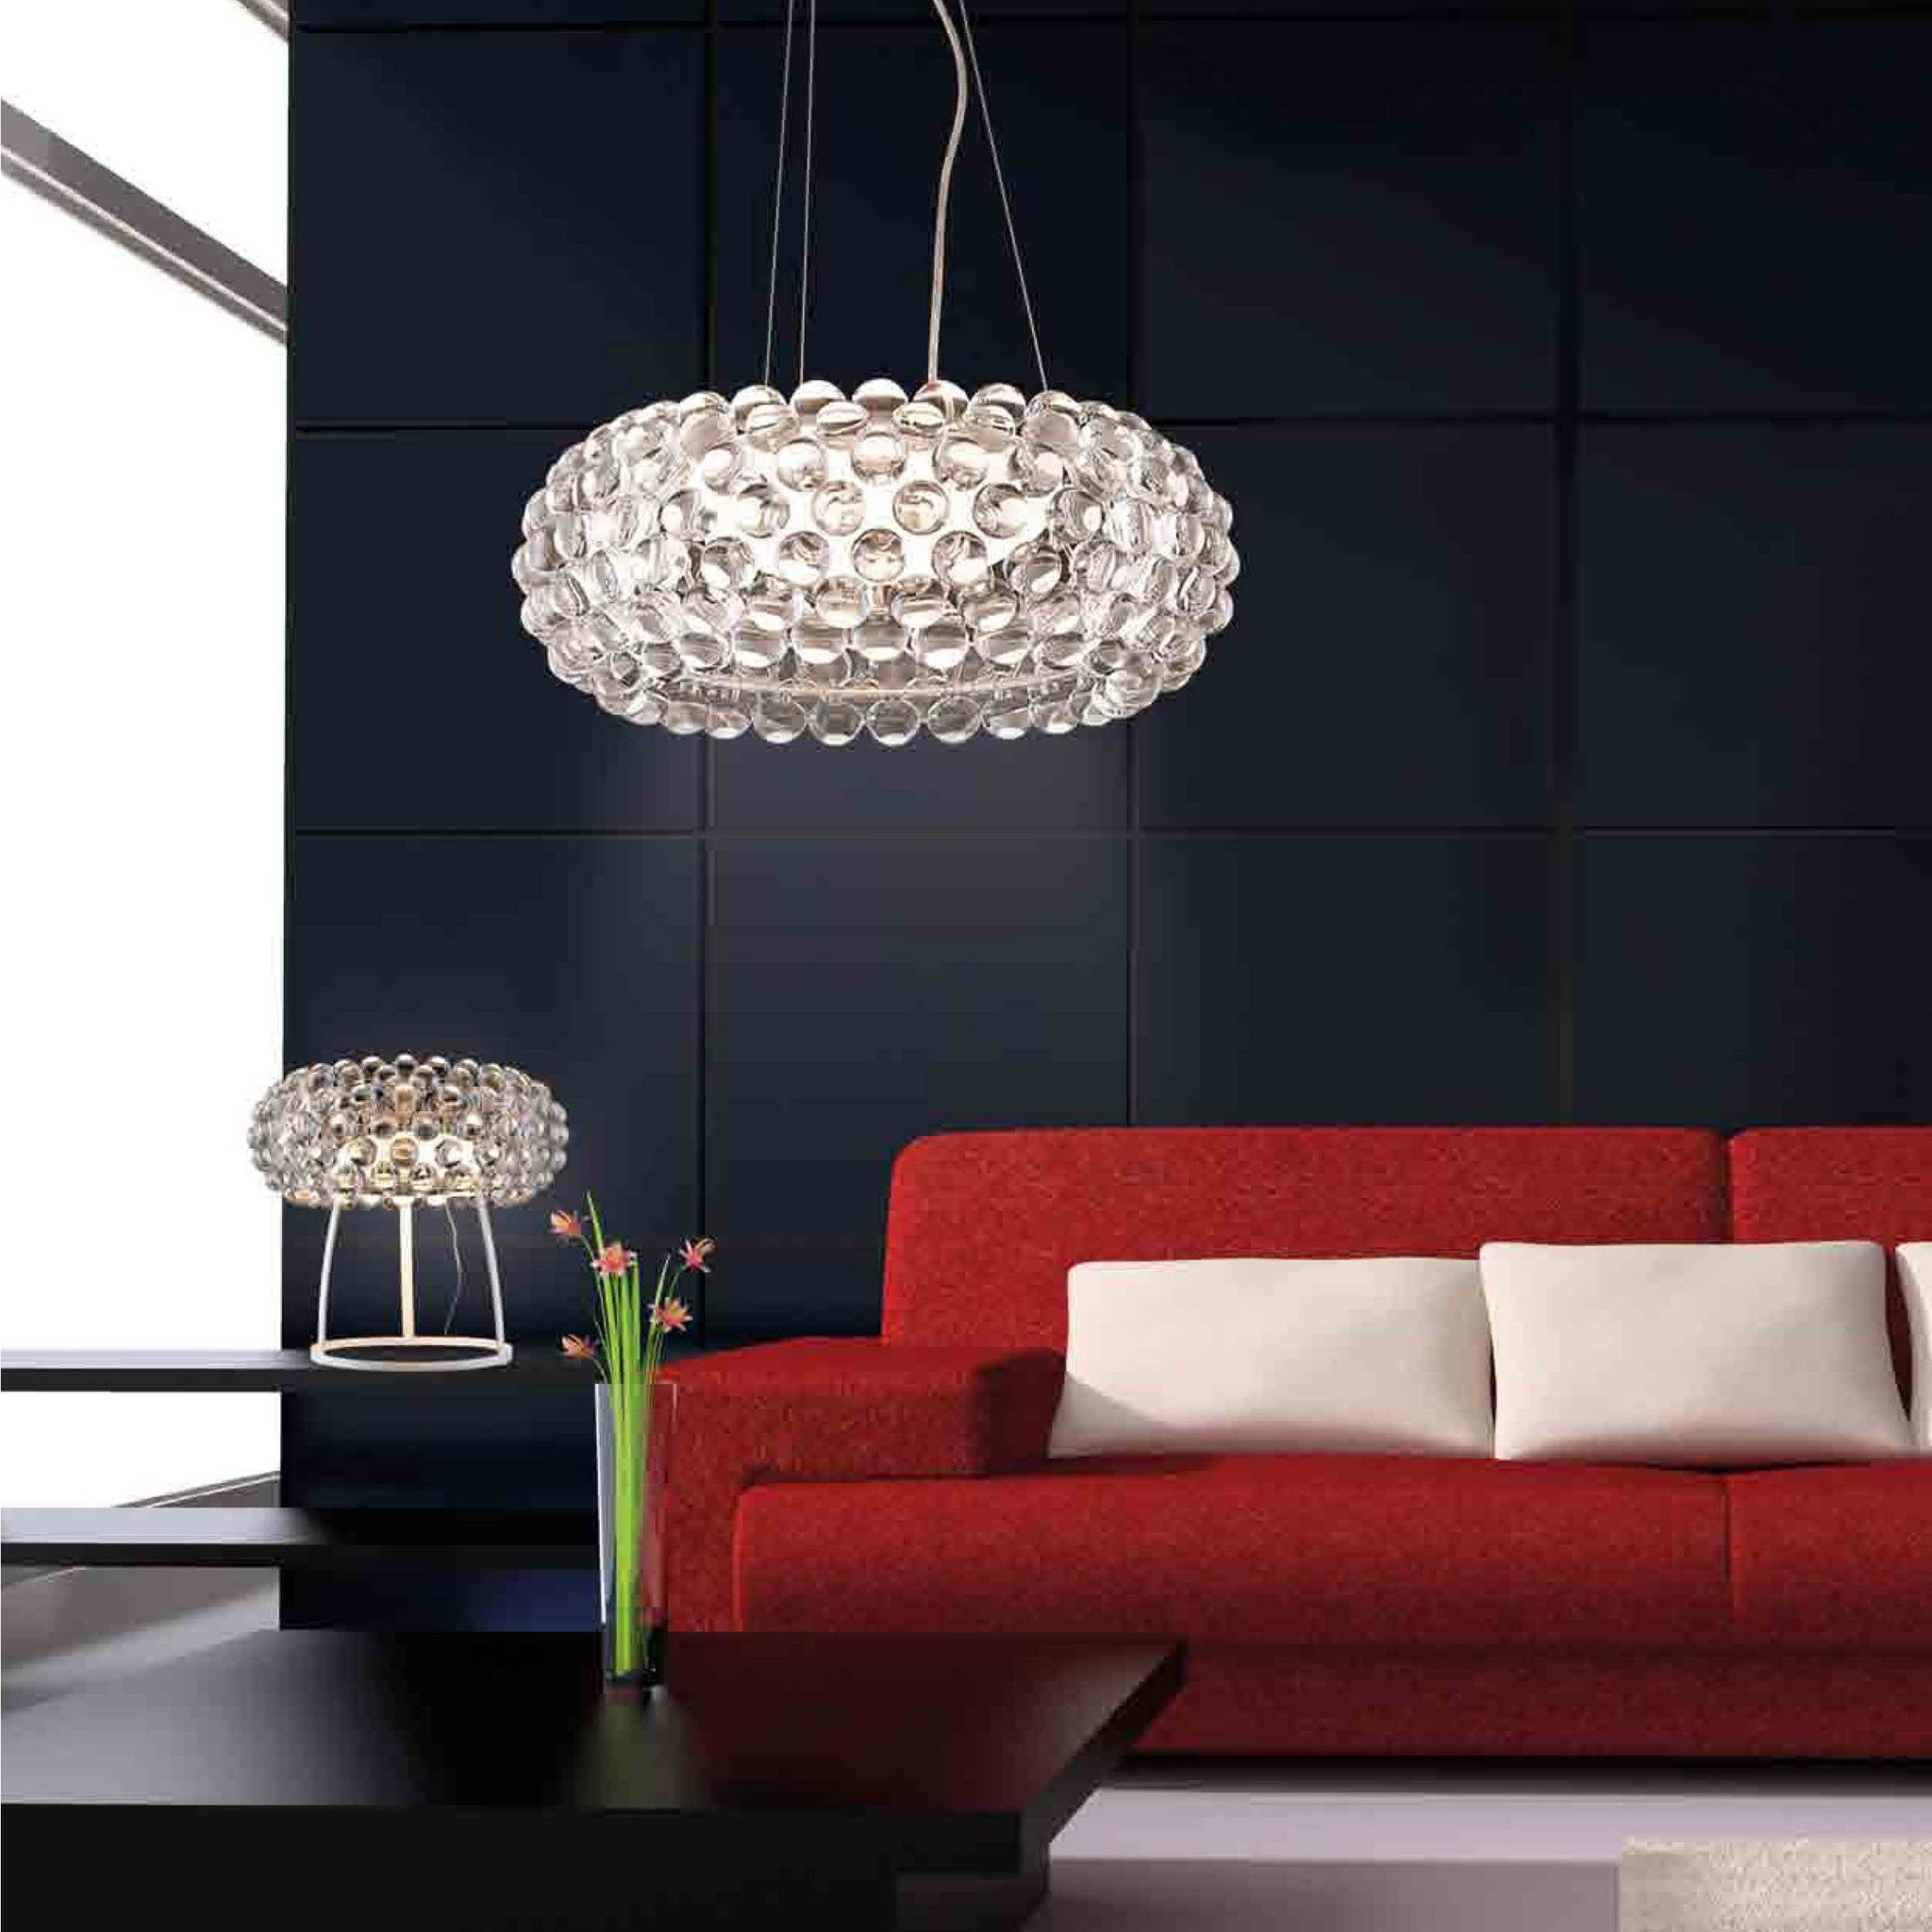 Living Room Pendant Lighting Azzardo Acrylio Large Clear Pendant Light Chandelier